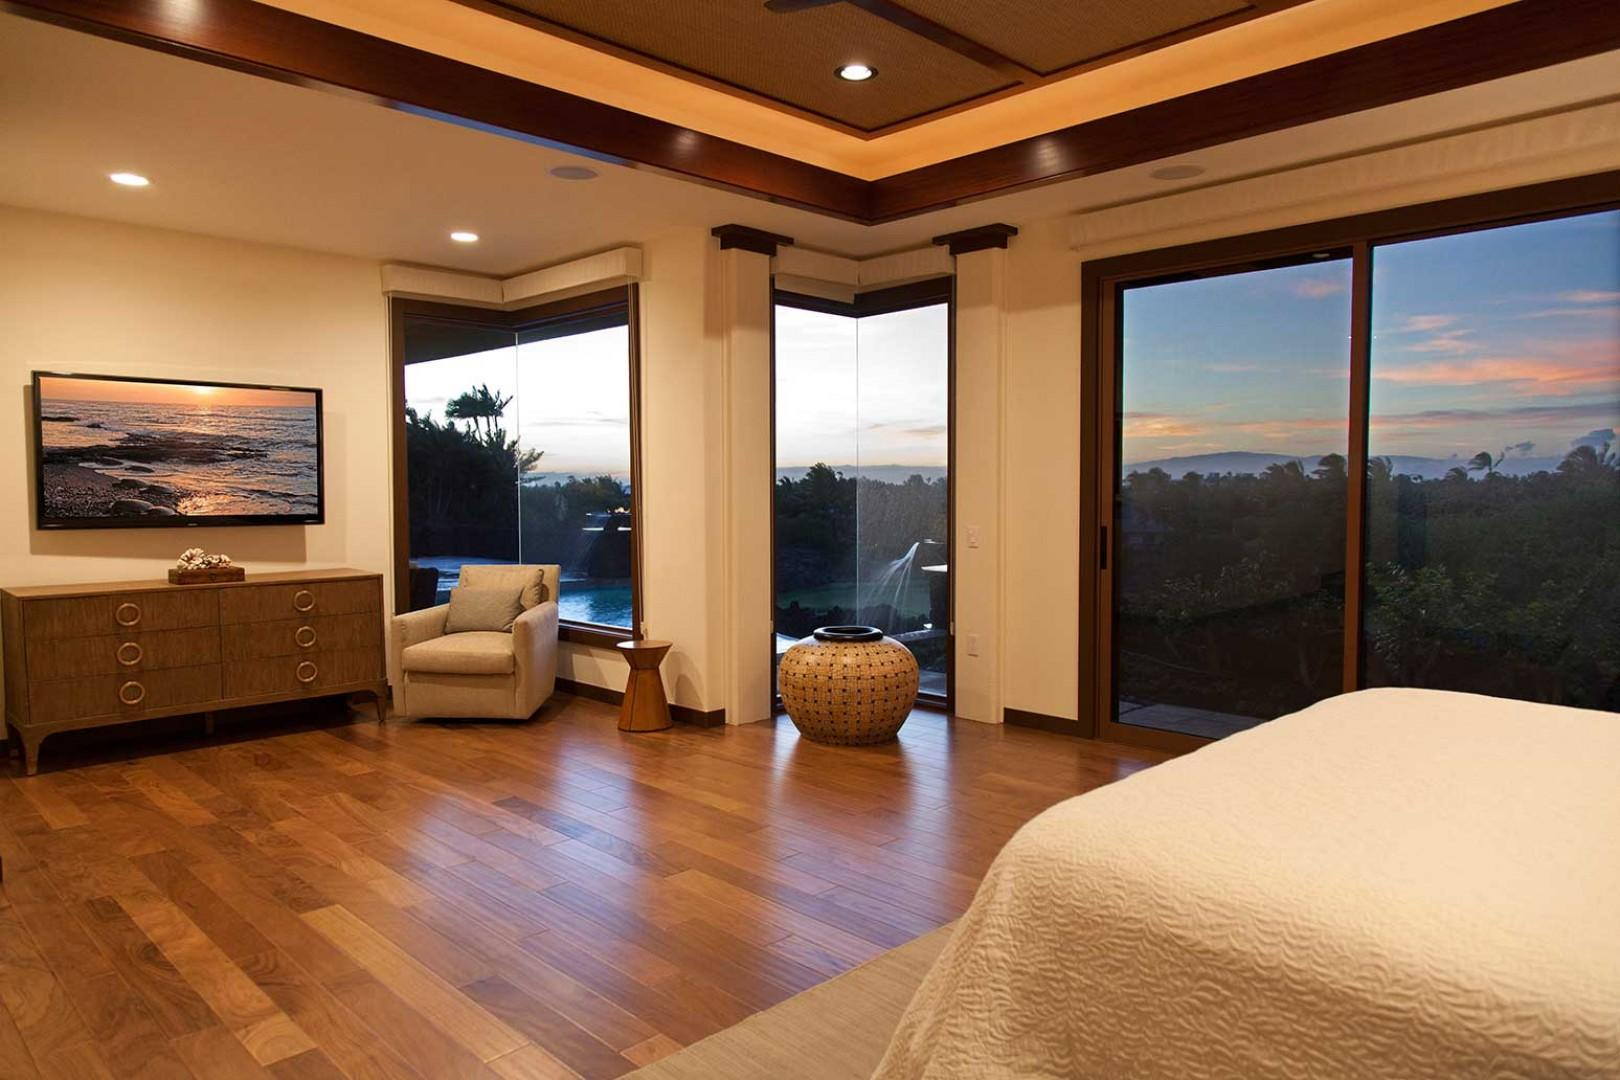 Master bedroom with sunset and ocean views, king bed, hardwood floors, and mounted flat-screen TV.